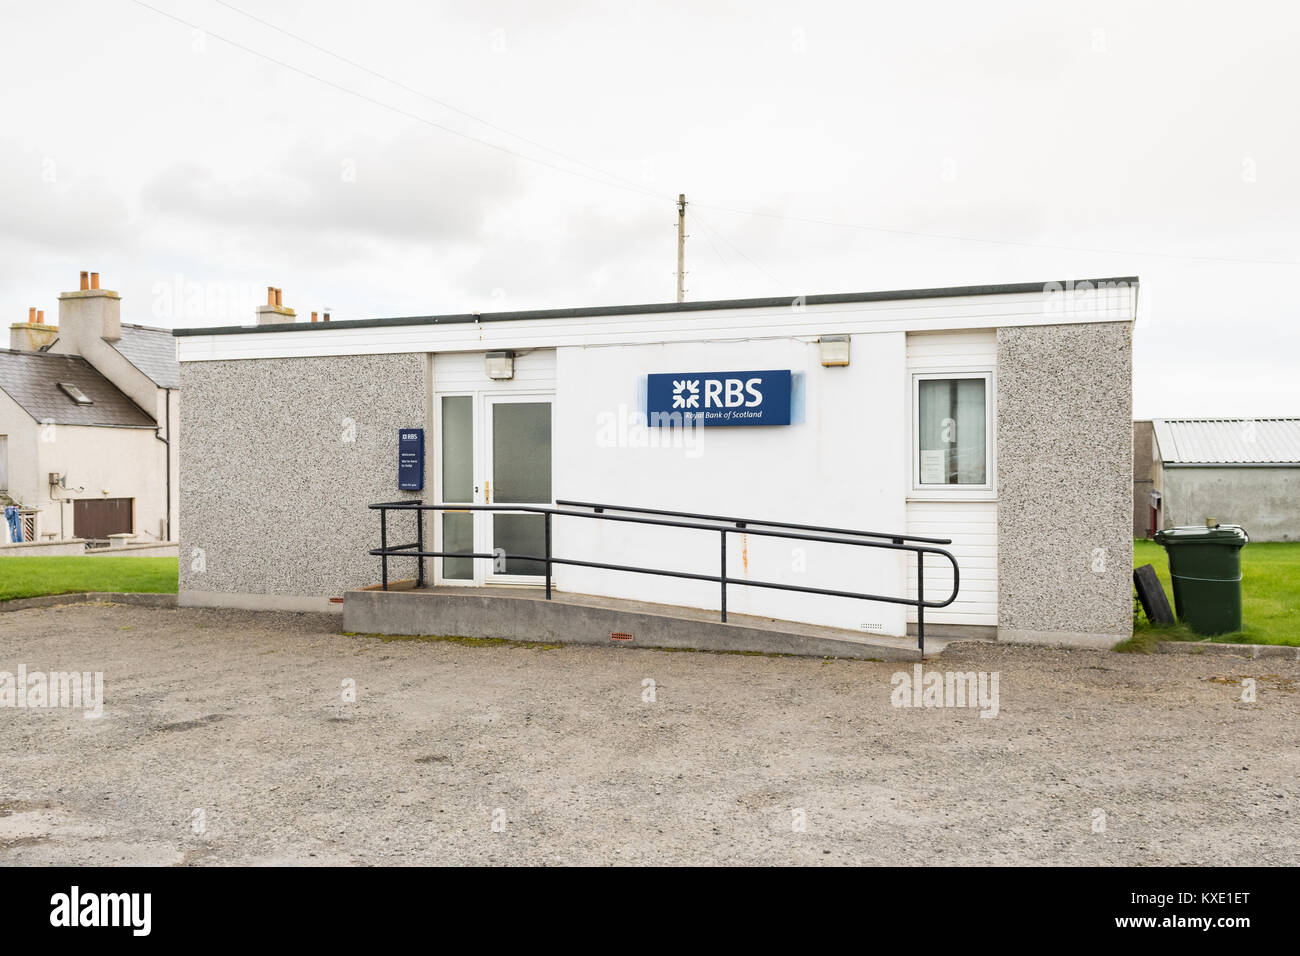 remote rural RBS Bank branch in Pierowall on the island of Westray in the Orkney Islands, Scotland UK - Stock Image